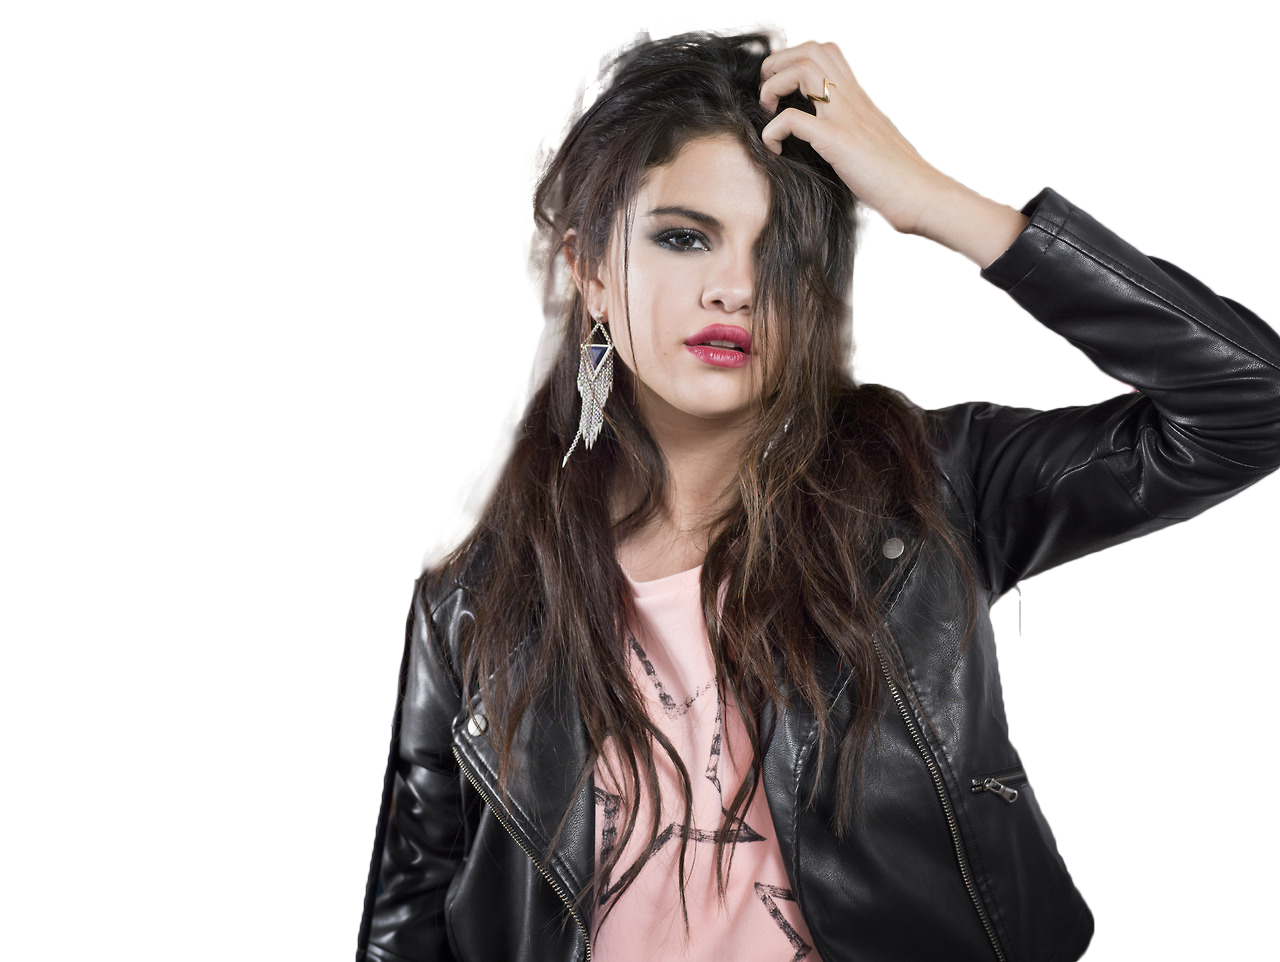 Selena Gomez Png By Cherryproductionsorg On Deviantart